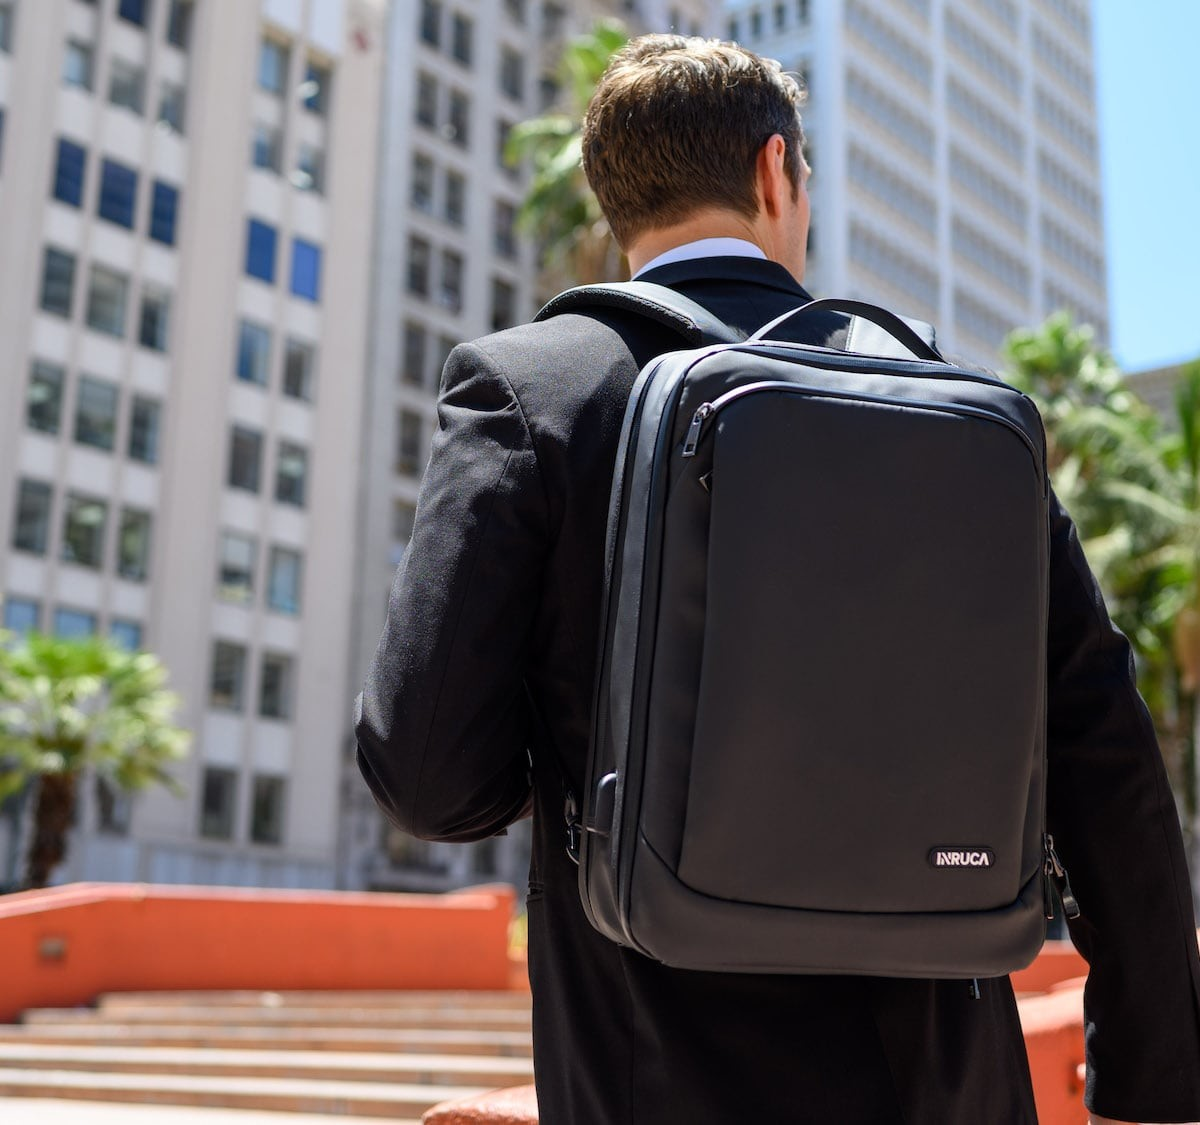 INRUCA everyday bag offers real-time tracking of contents via mobile app